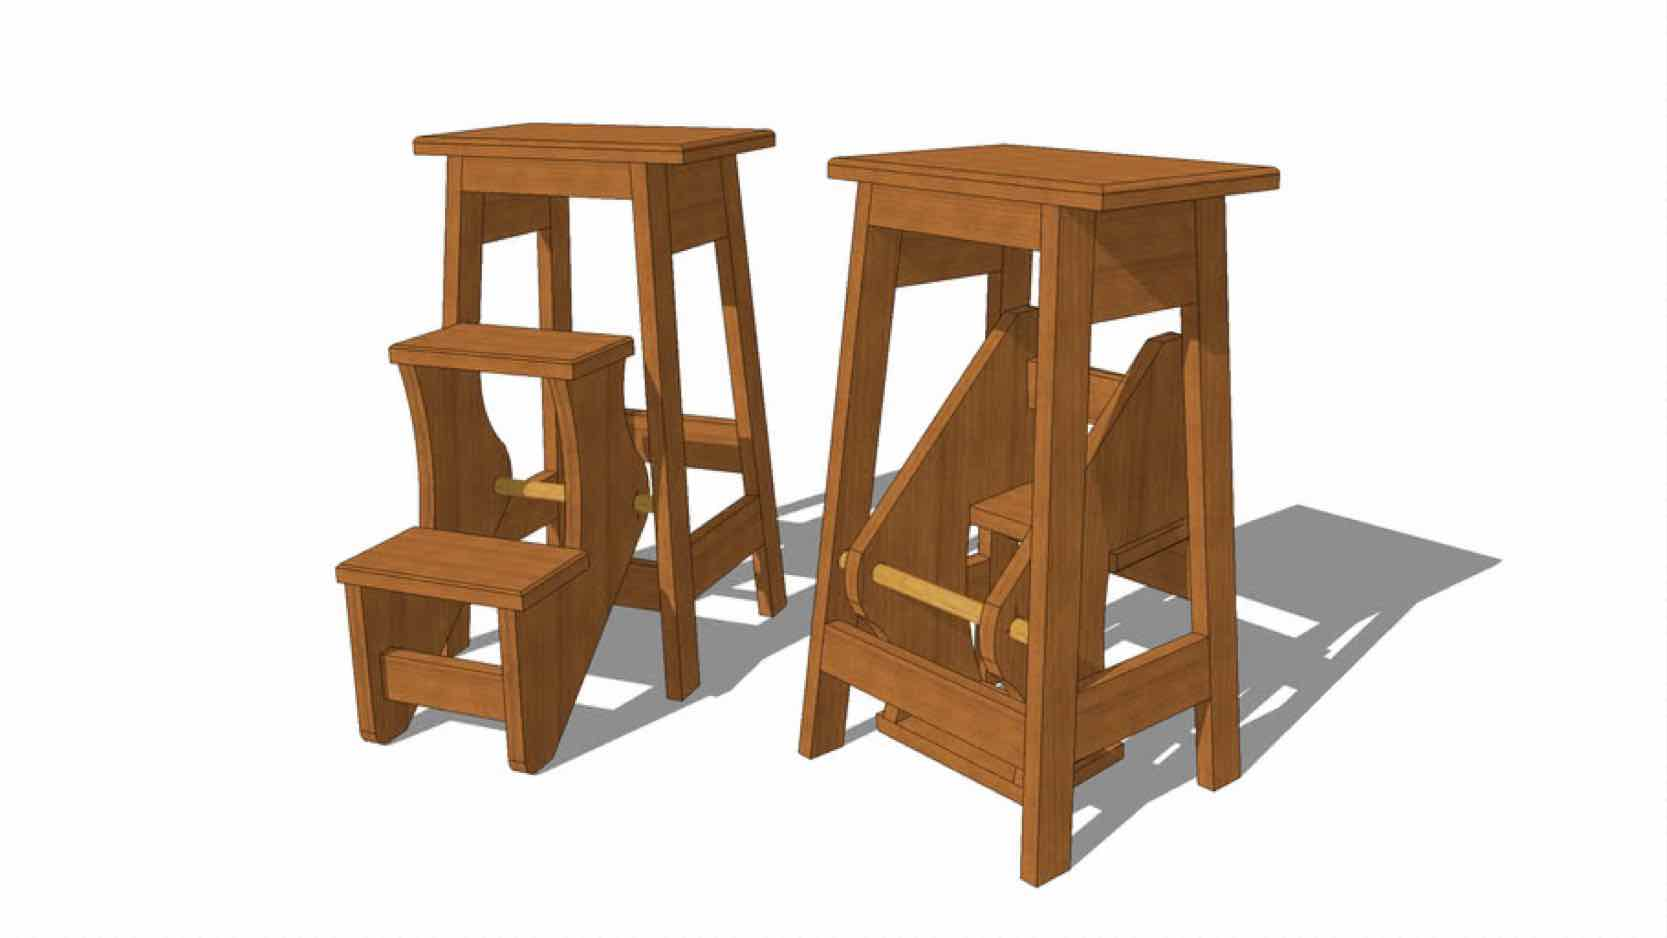 step stools,flip out stools,diy,free woodworking plans,free projects,do it yourself